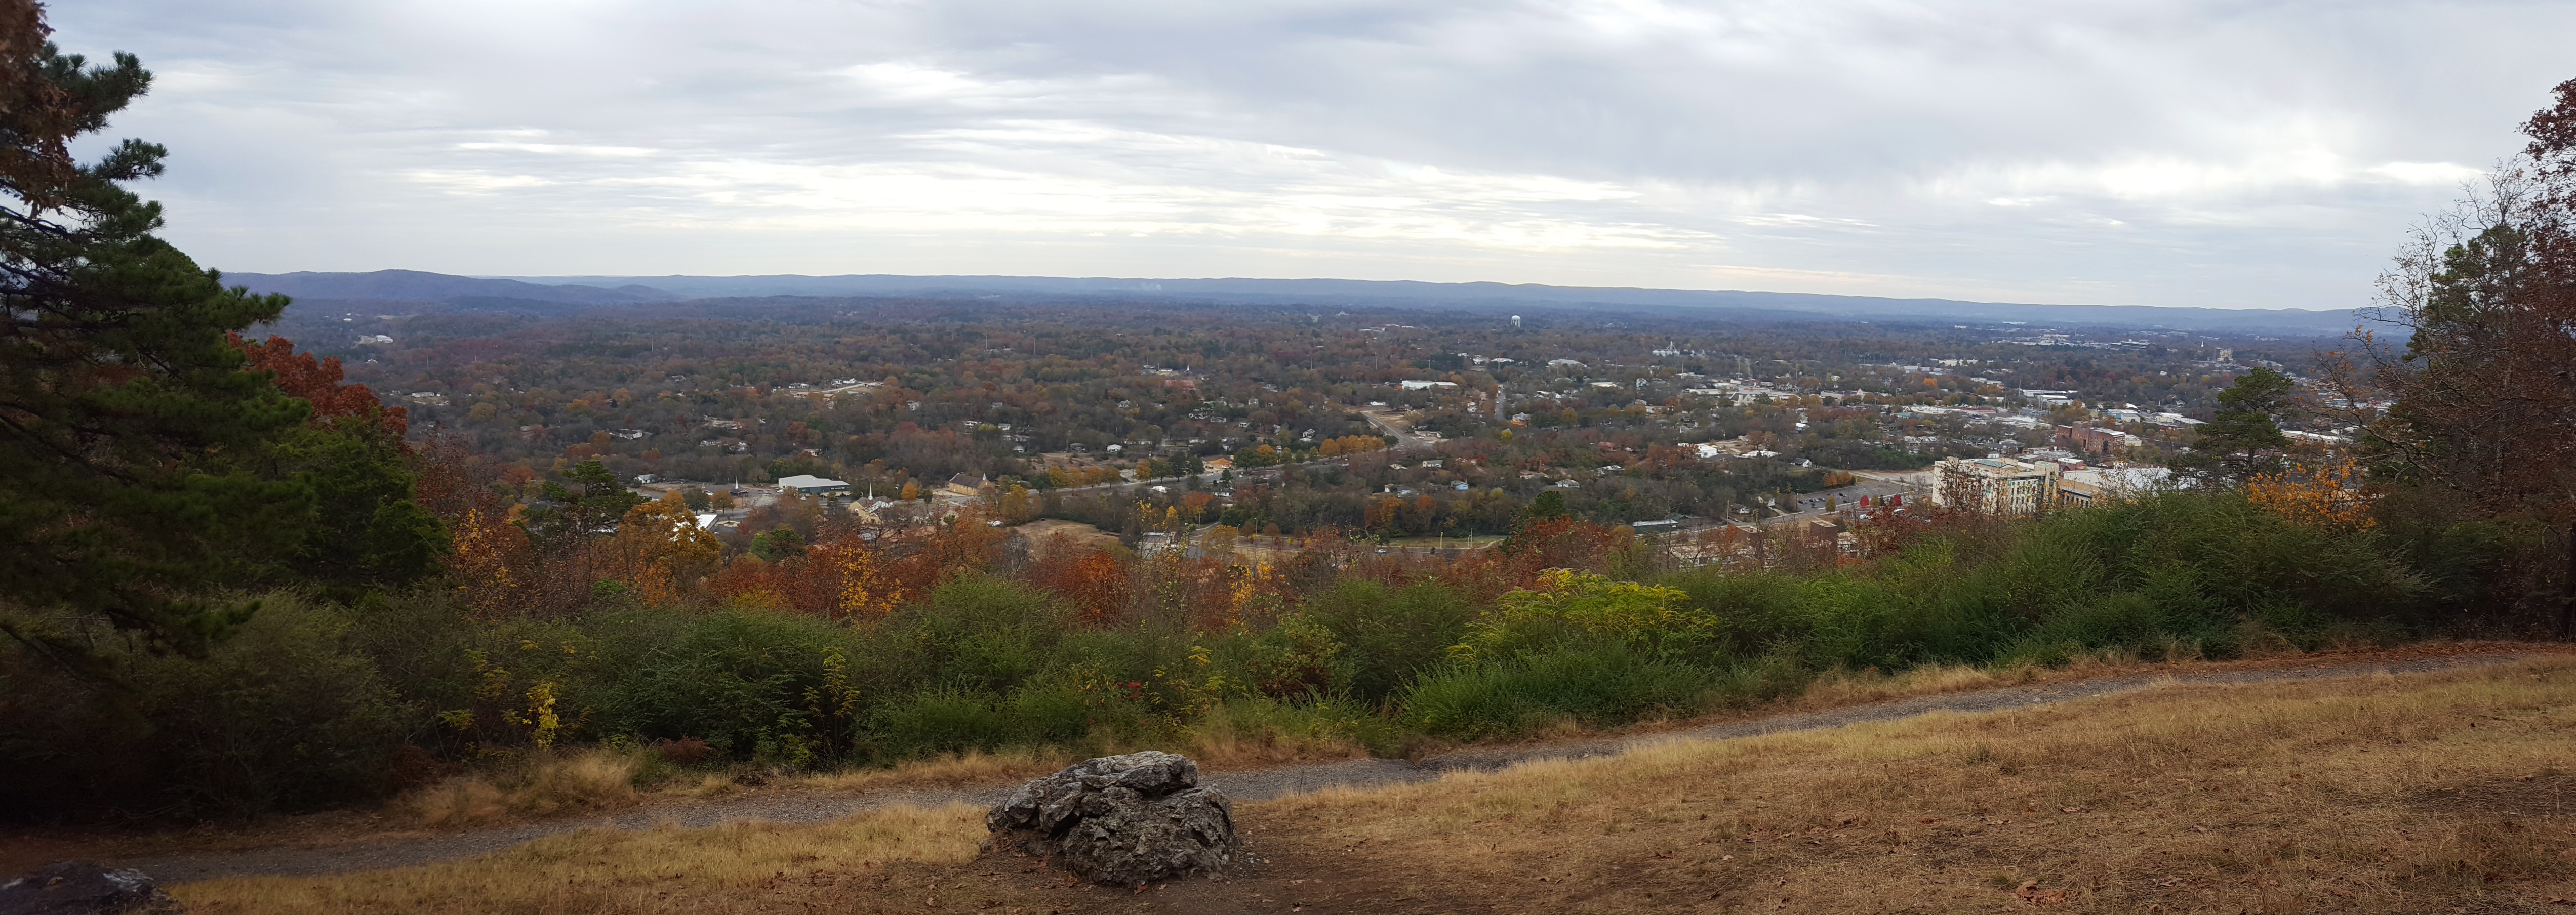 View from the top of the mountain in Hot Springs, Arkansas